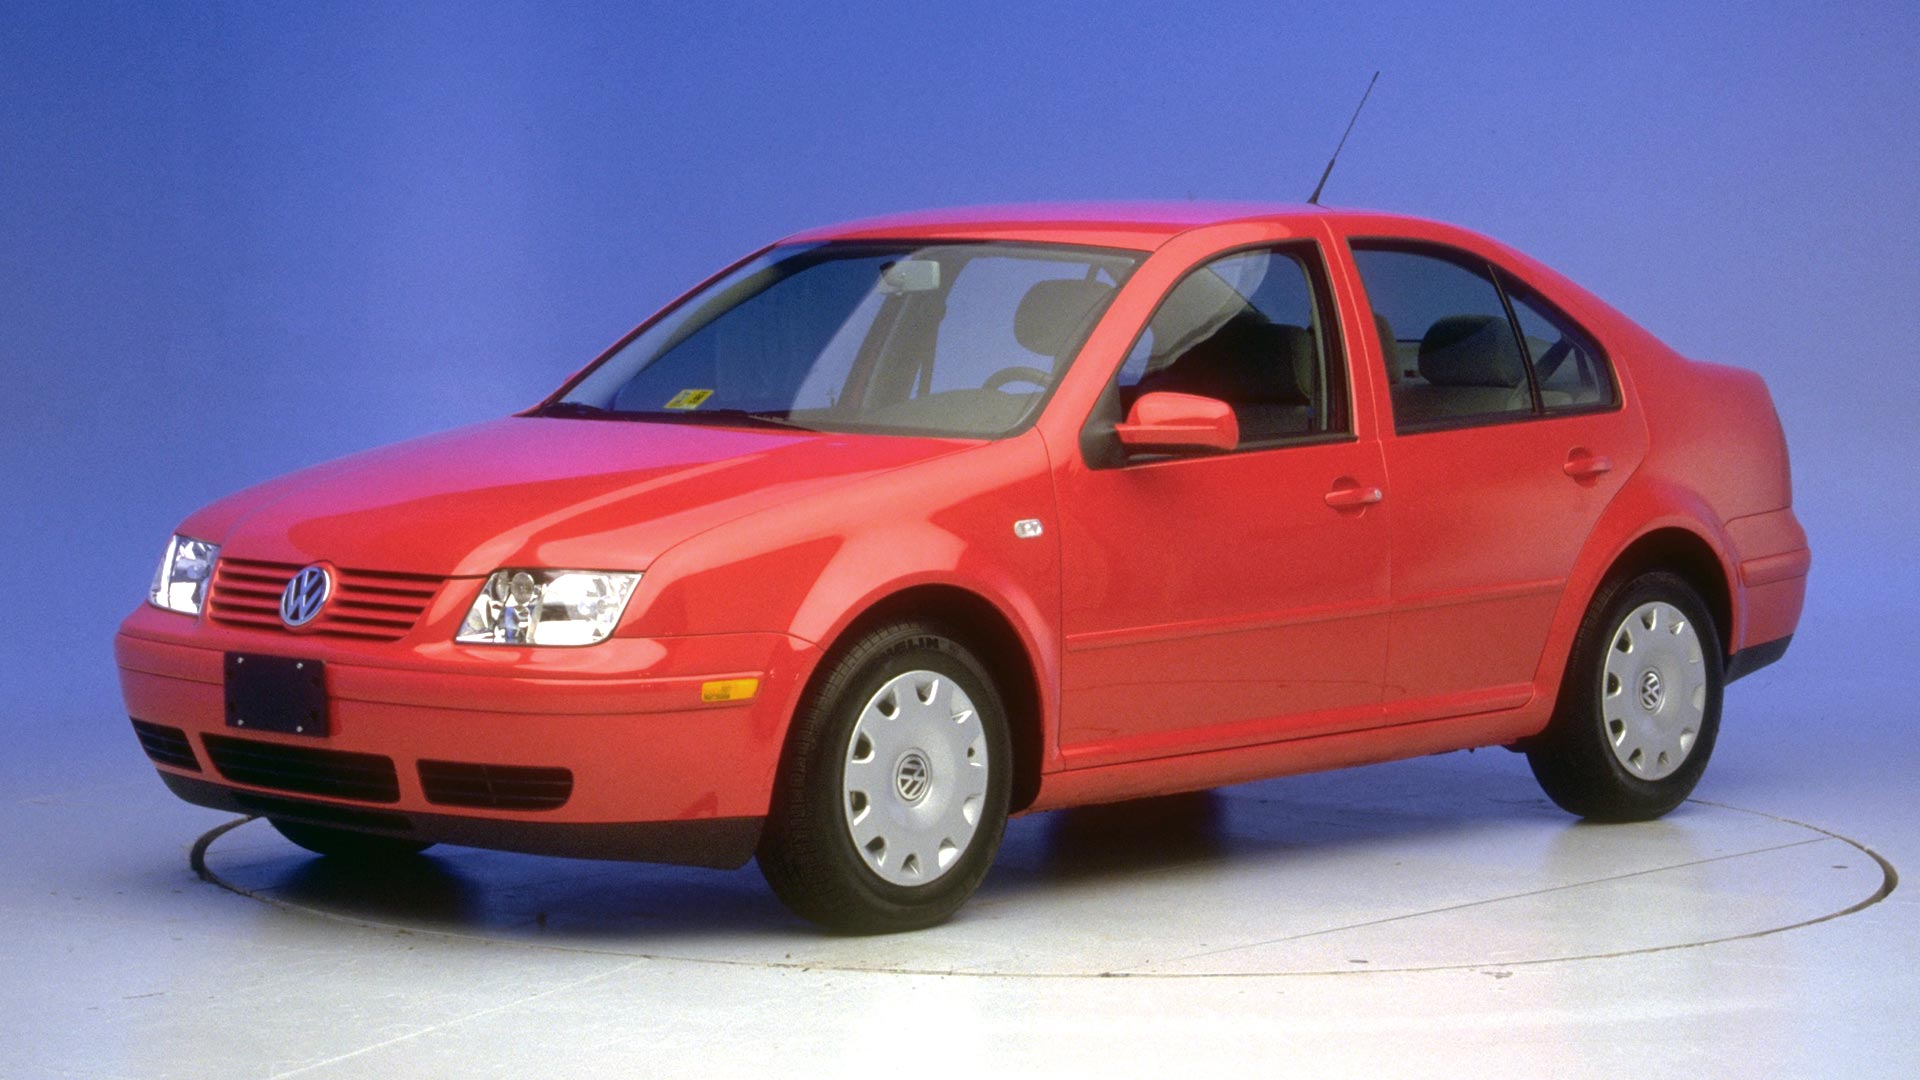 2003 Volkswagen Jetta 4-door sedan